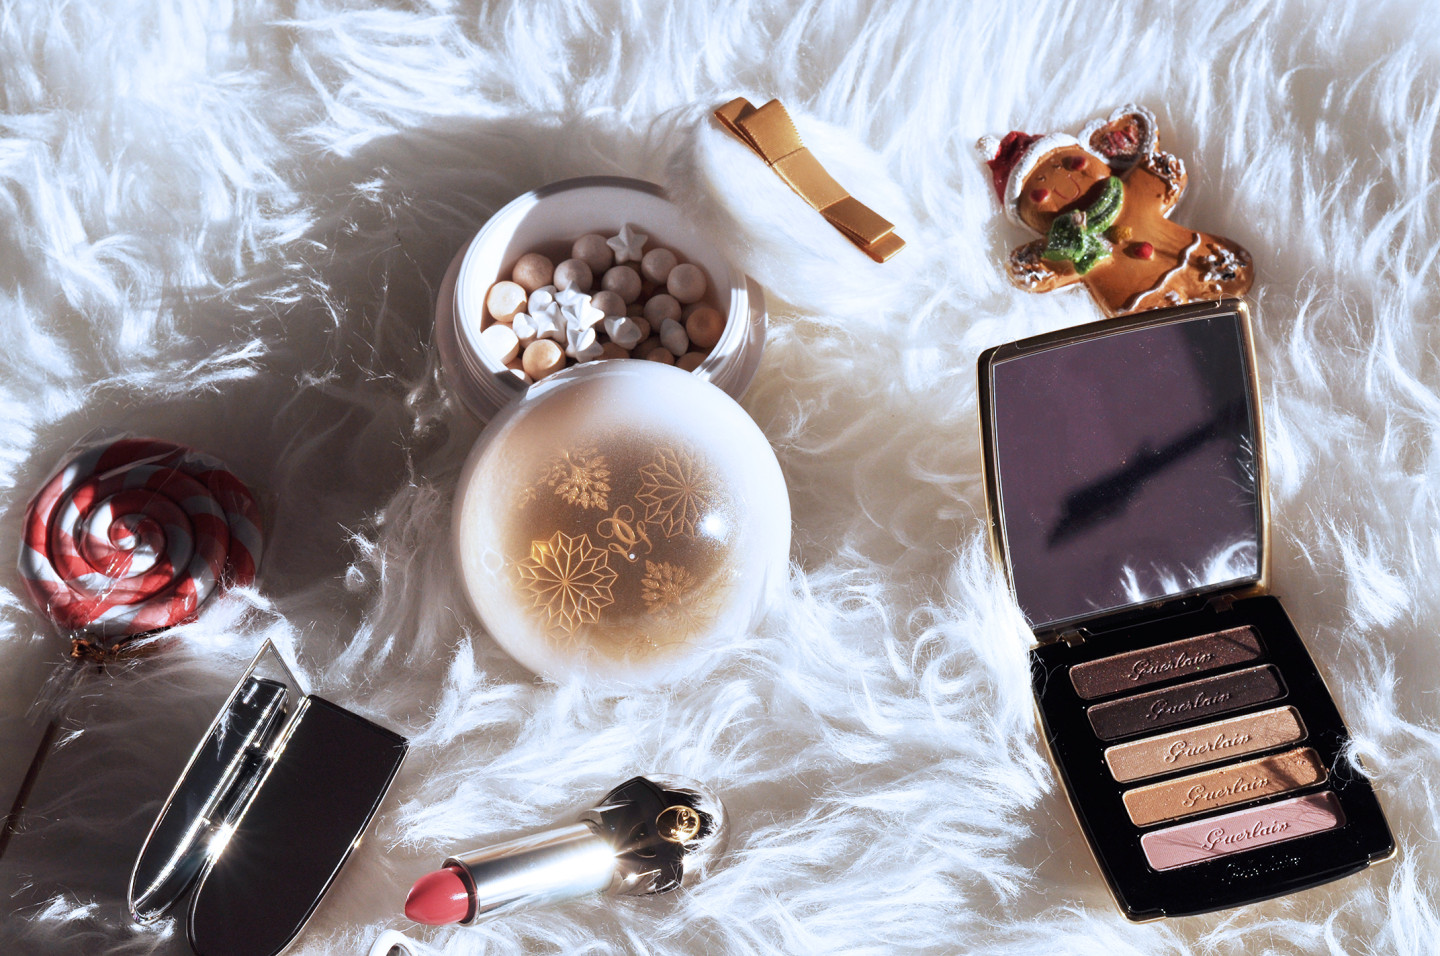 guerlain-collezione-natale-2015-valentina-coco-paris-fashion-blogger